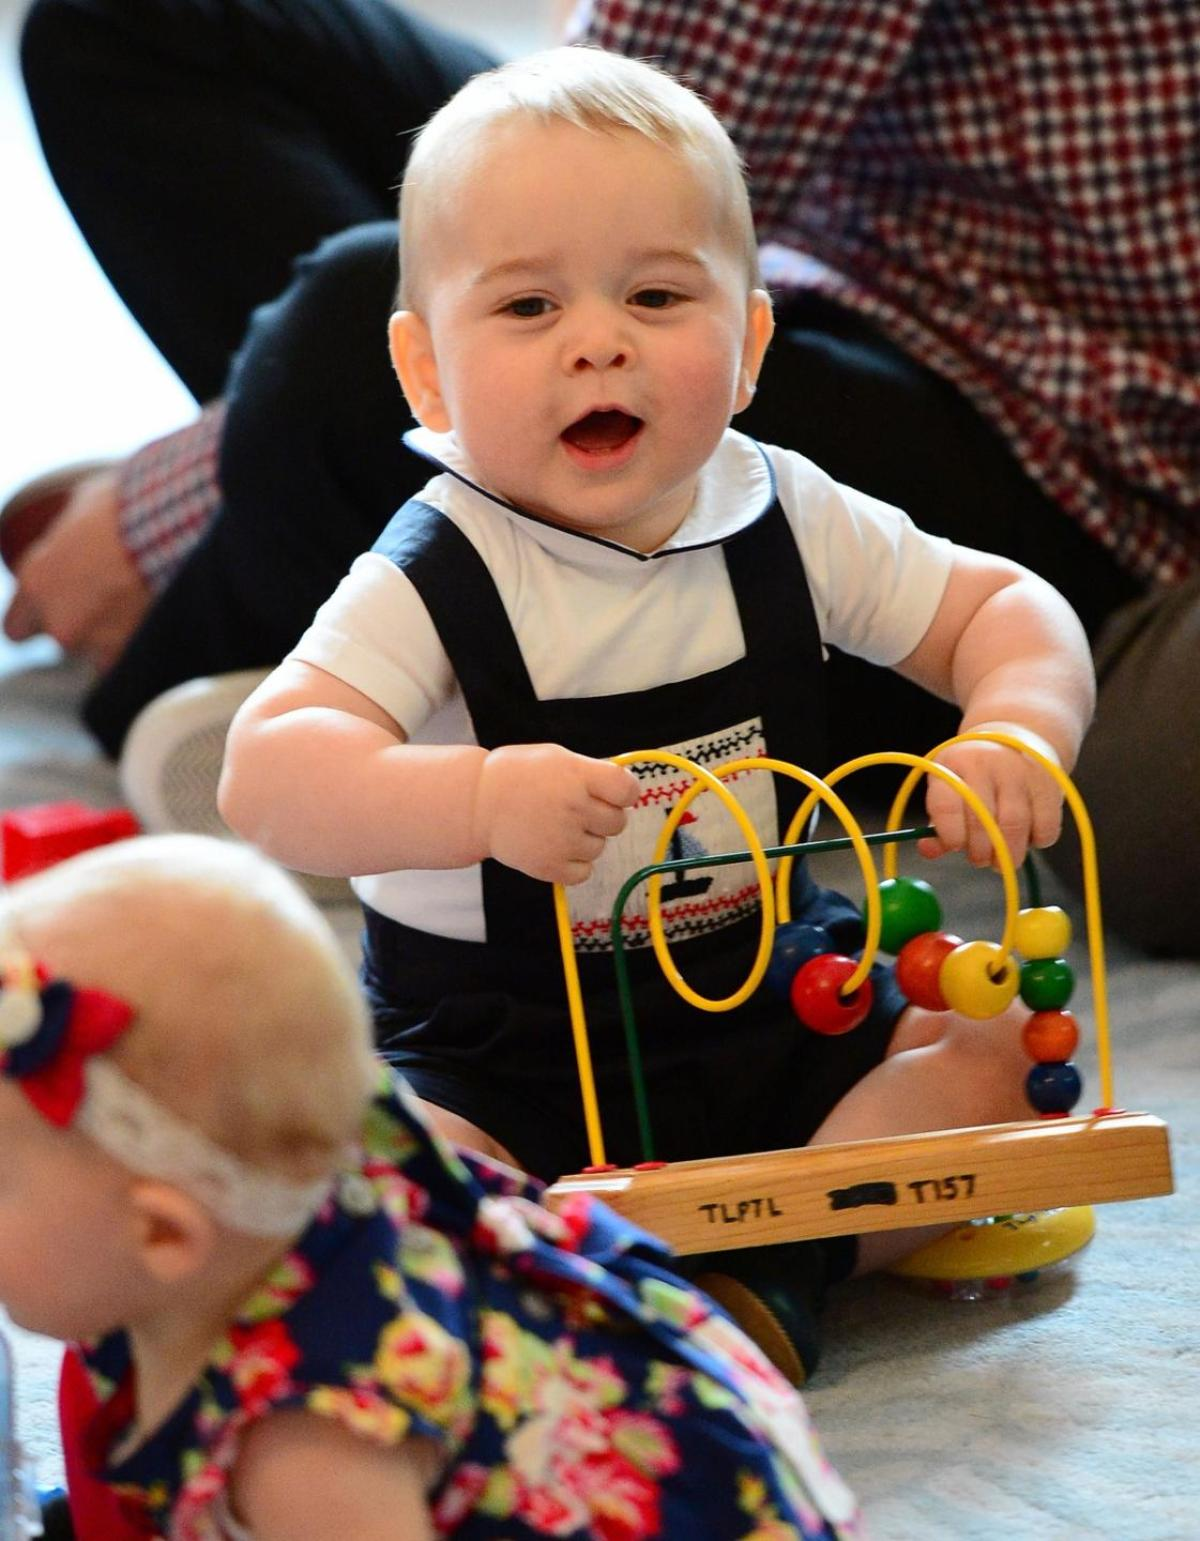 ที่มาภาพ http://www.nydailynews.com/news/world/prince-george-royal-crawl-about-new-zealand-article-1.1750385